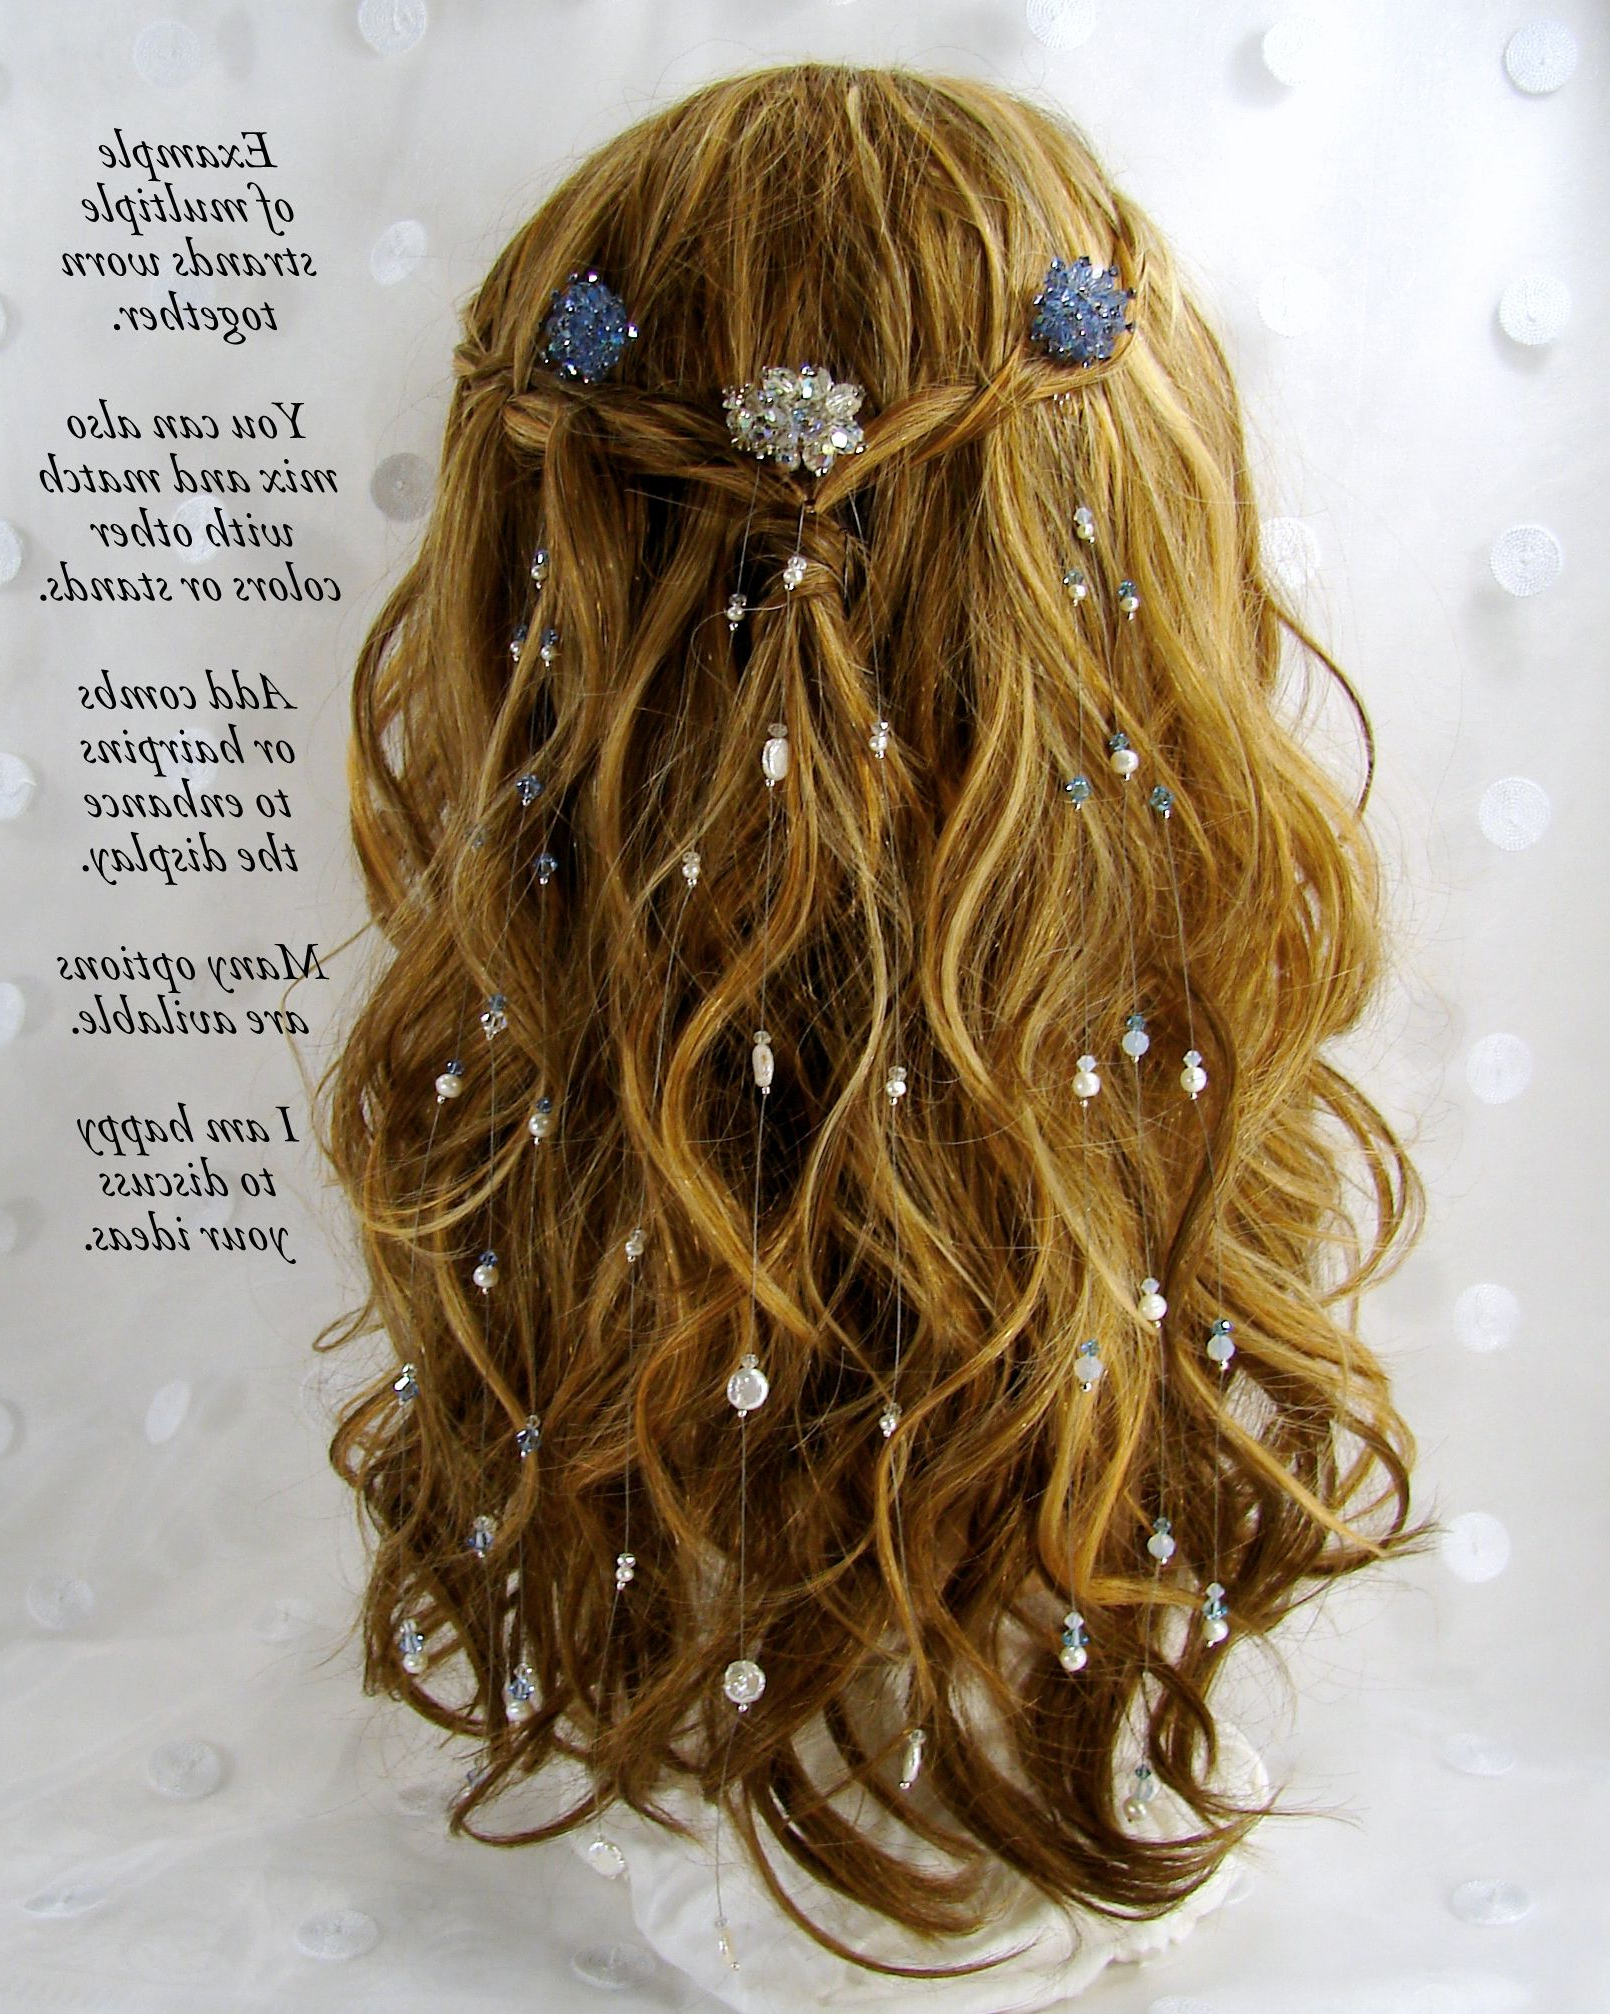 Hair Extensions Swarovski Crystals Freshwater Pearls Bohemian Intended For 2018 Graded Ponytail Hairstyles With A Butterfly Clasp (Gallery 10 of 20)